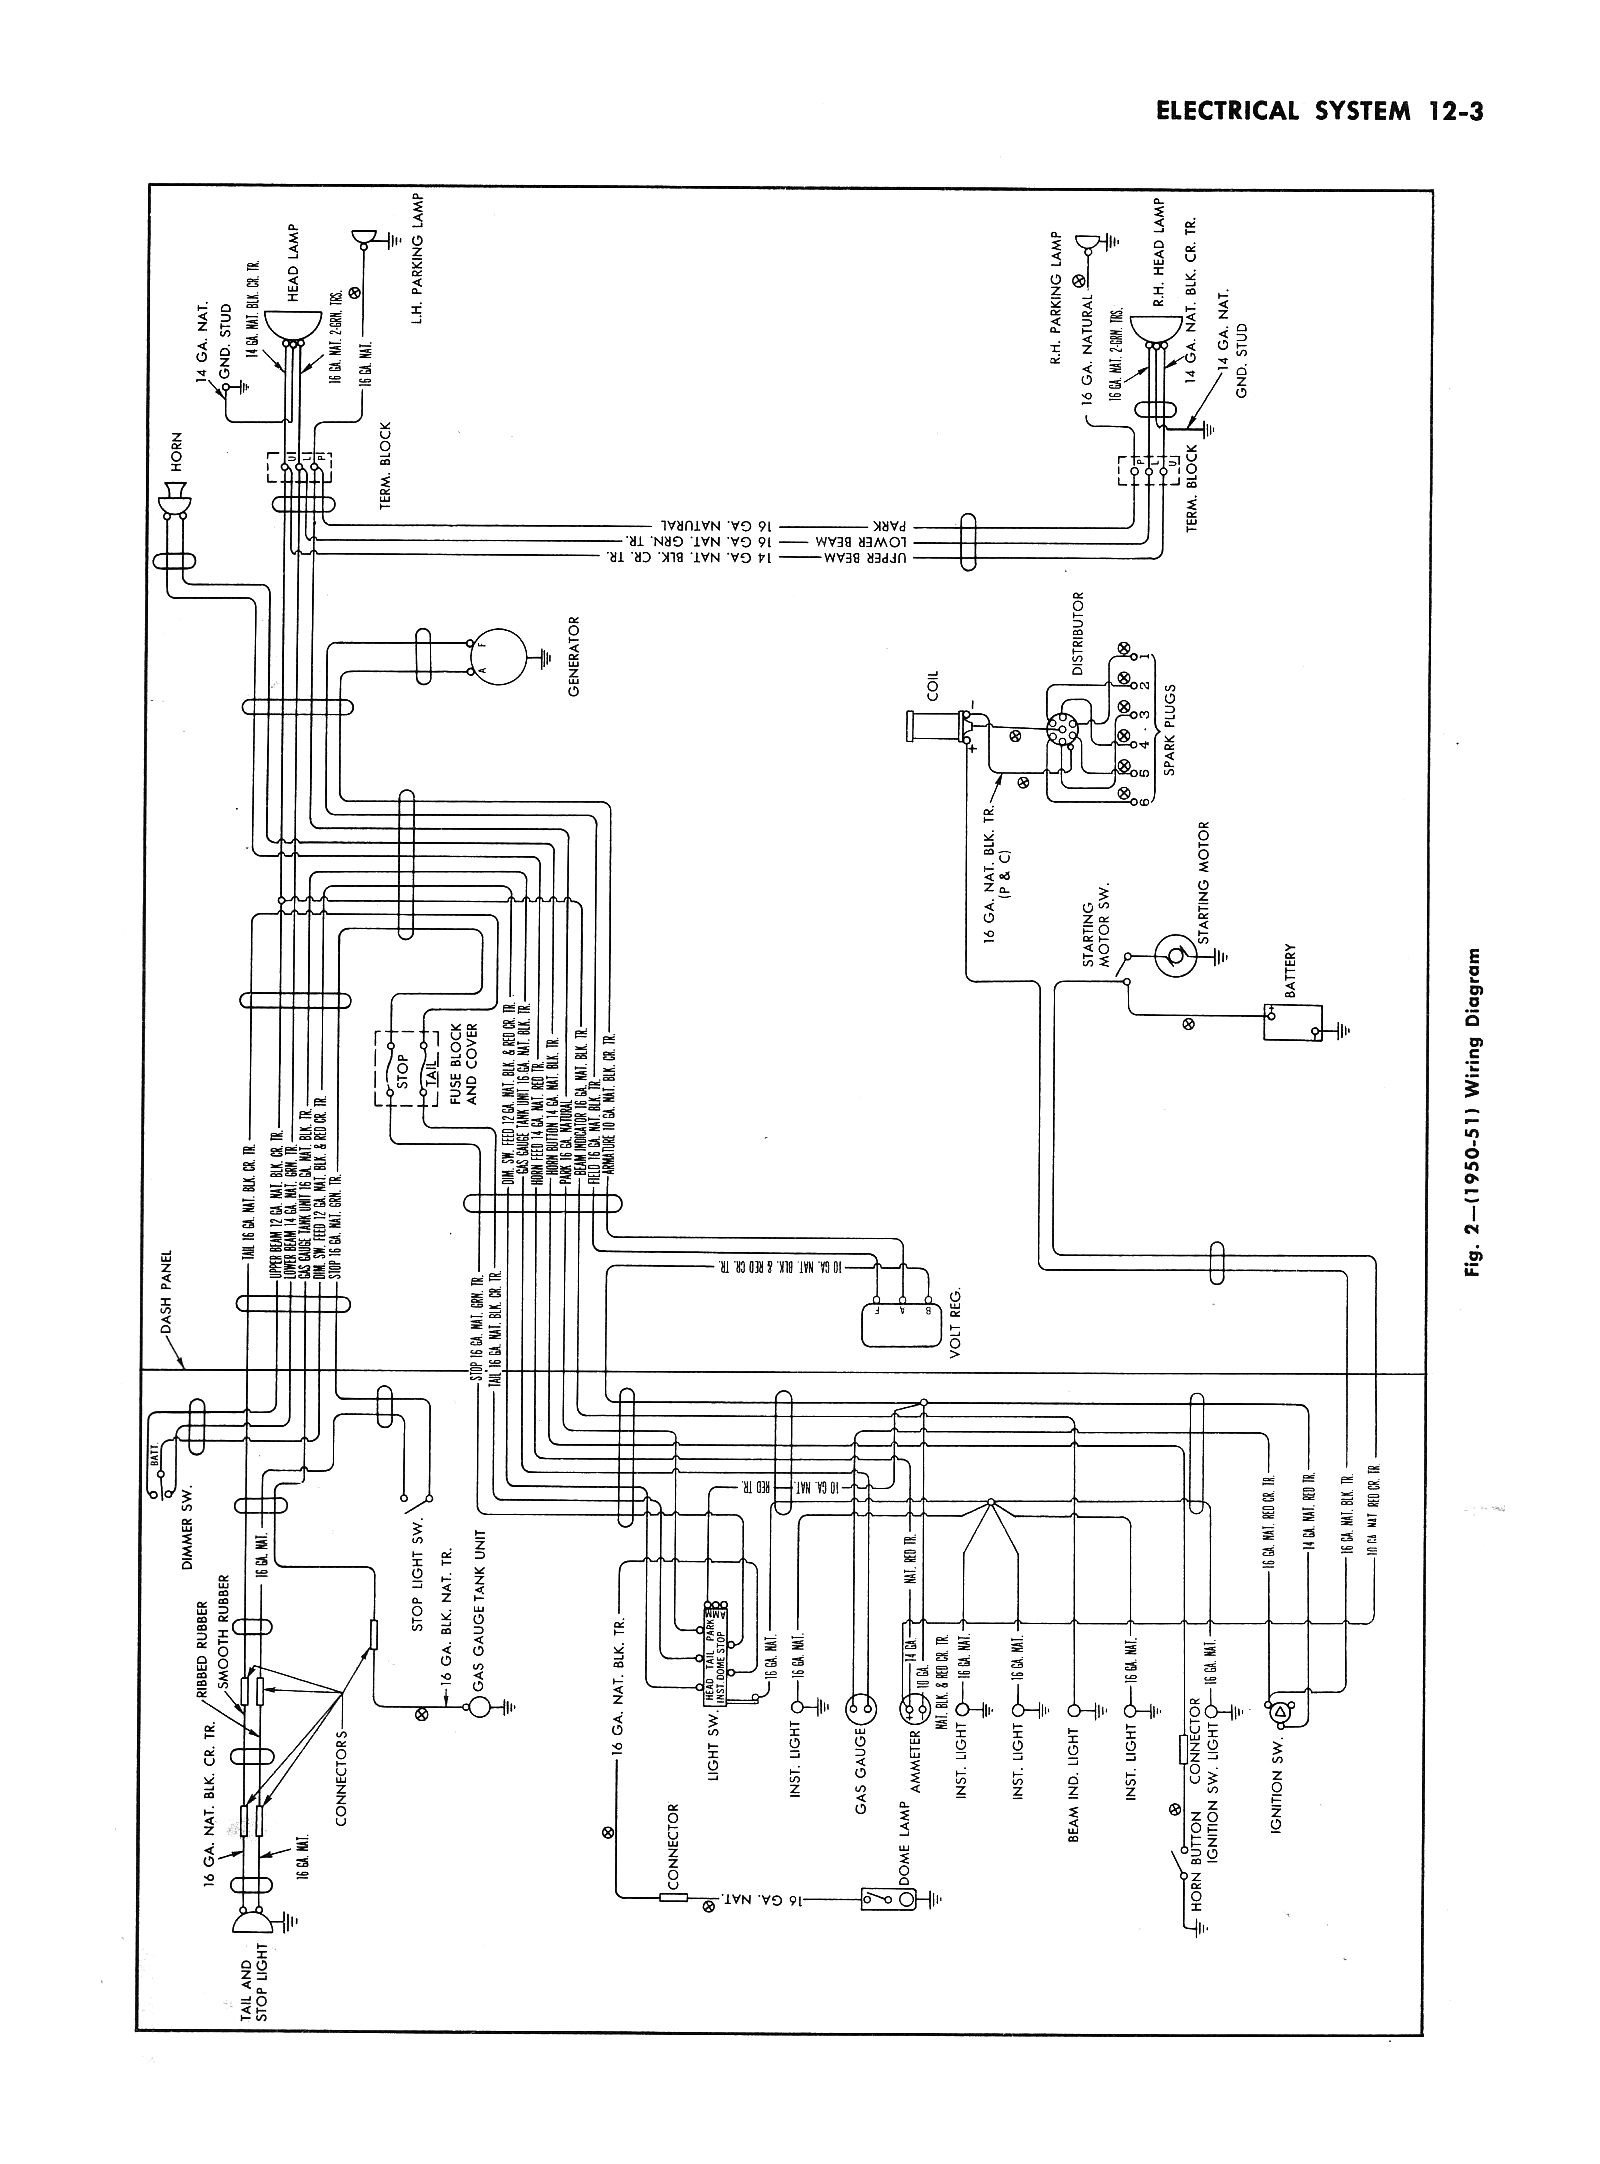 1942 Dodge Wiring Diagram Wiring Diagram Detailed